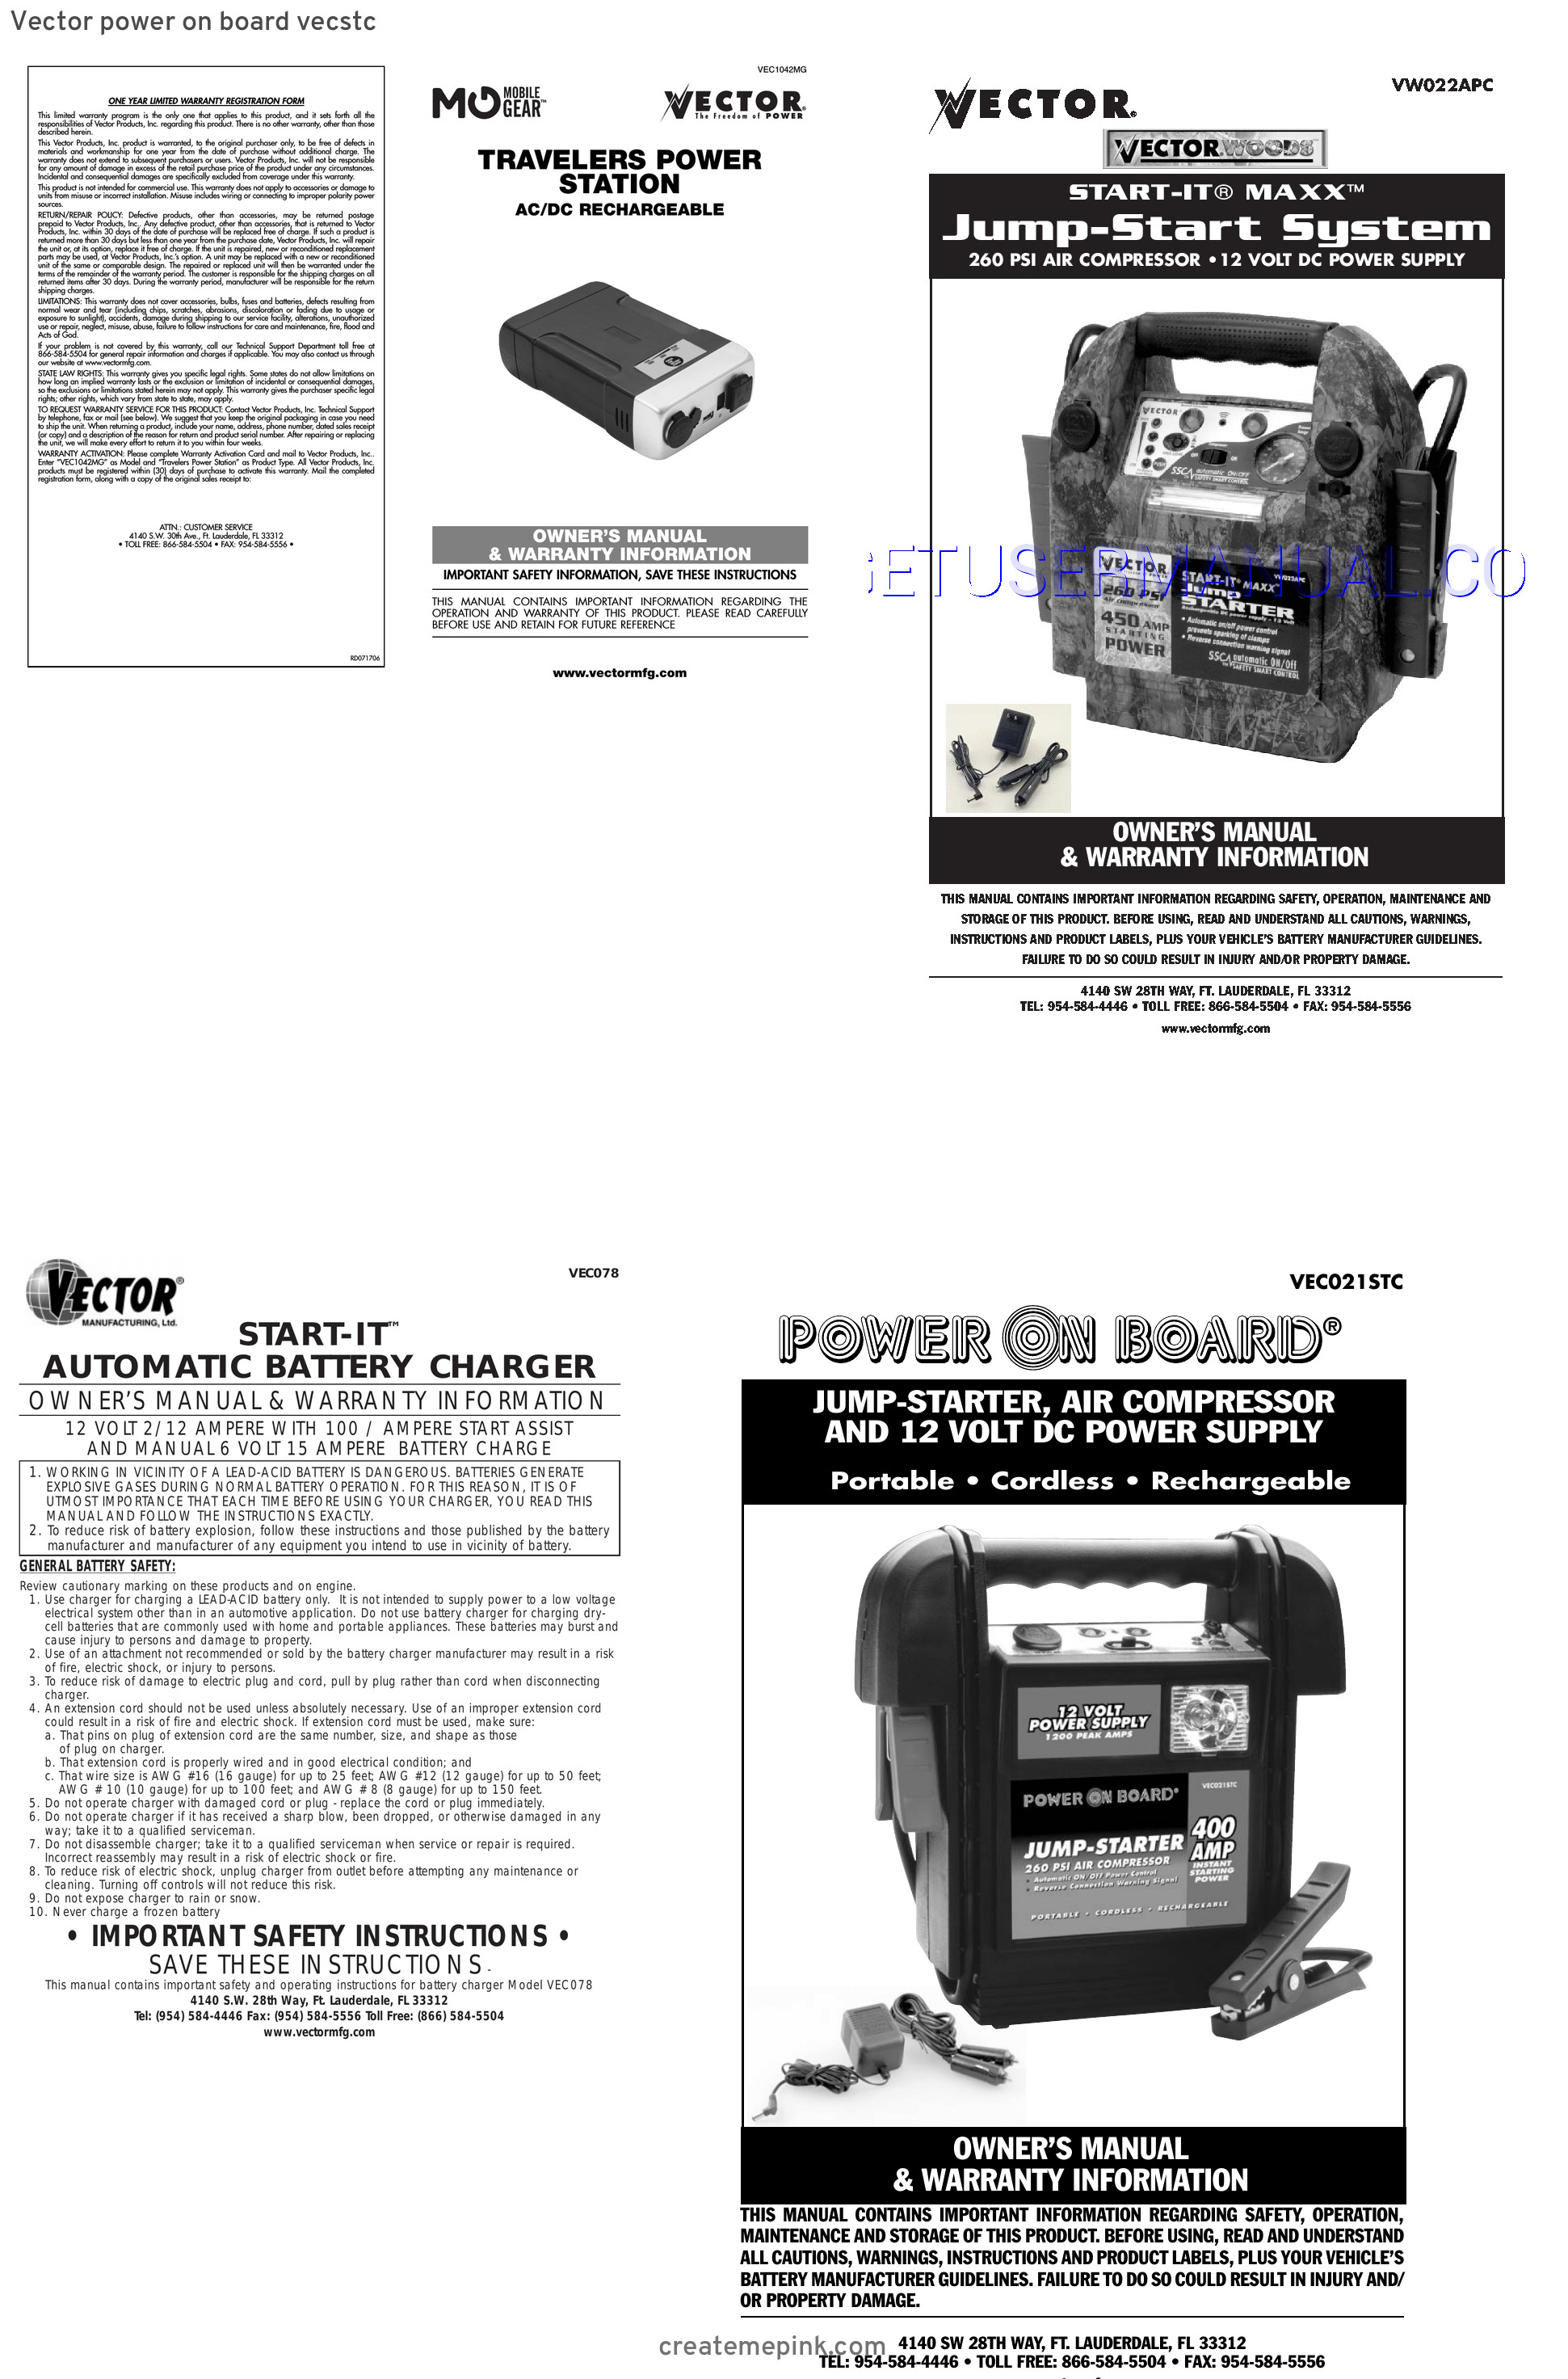 Vector Battery Charger Instruction Manual: Vector Power On Board Vecstc